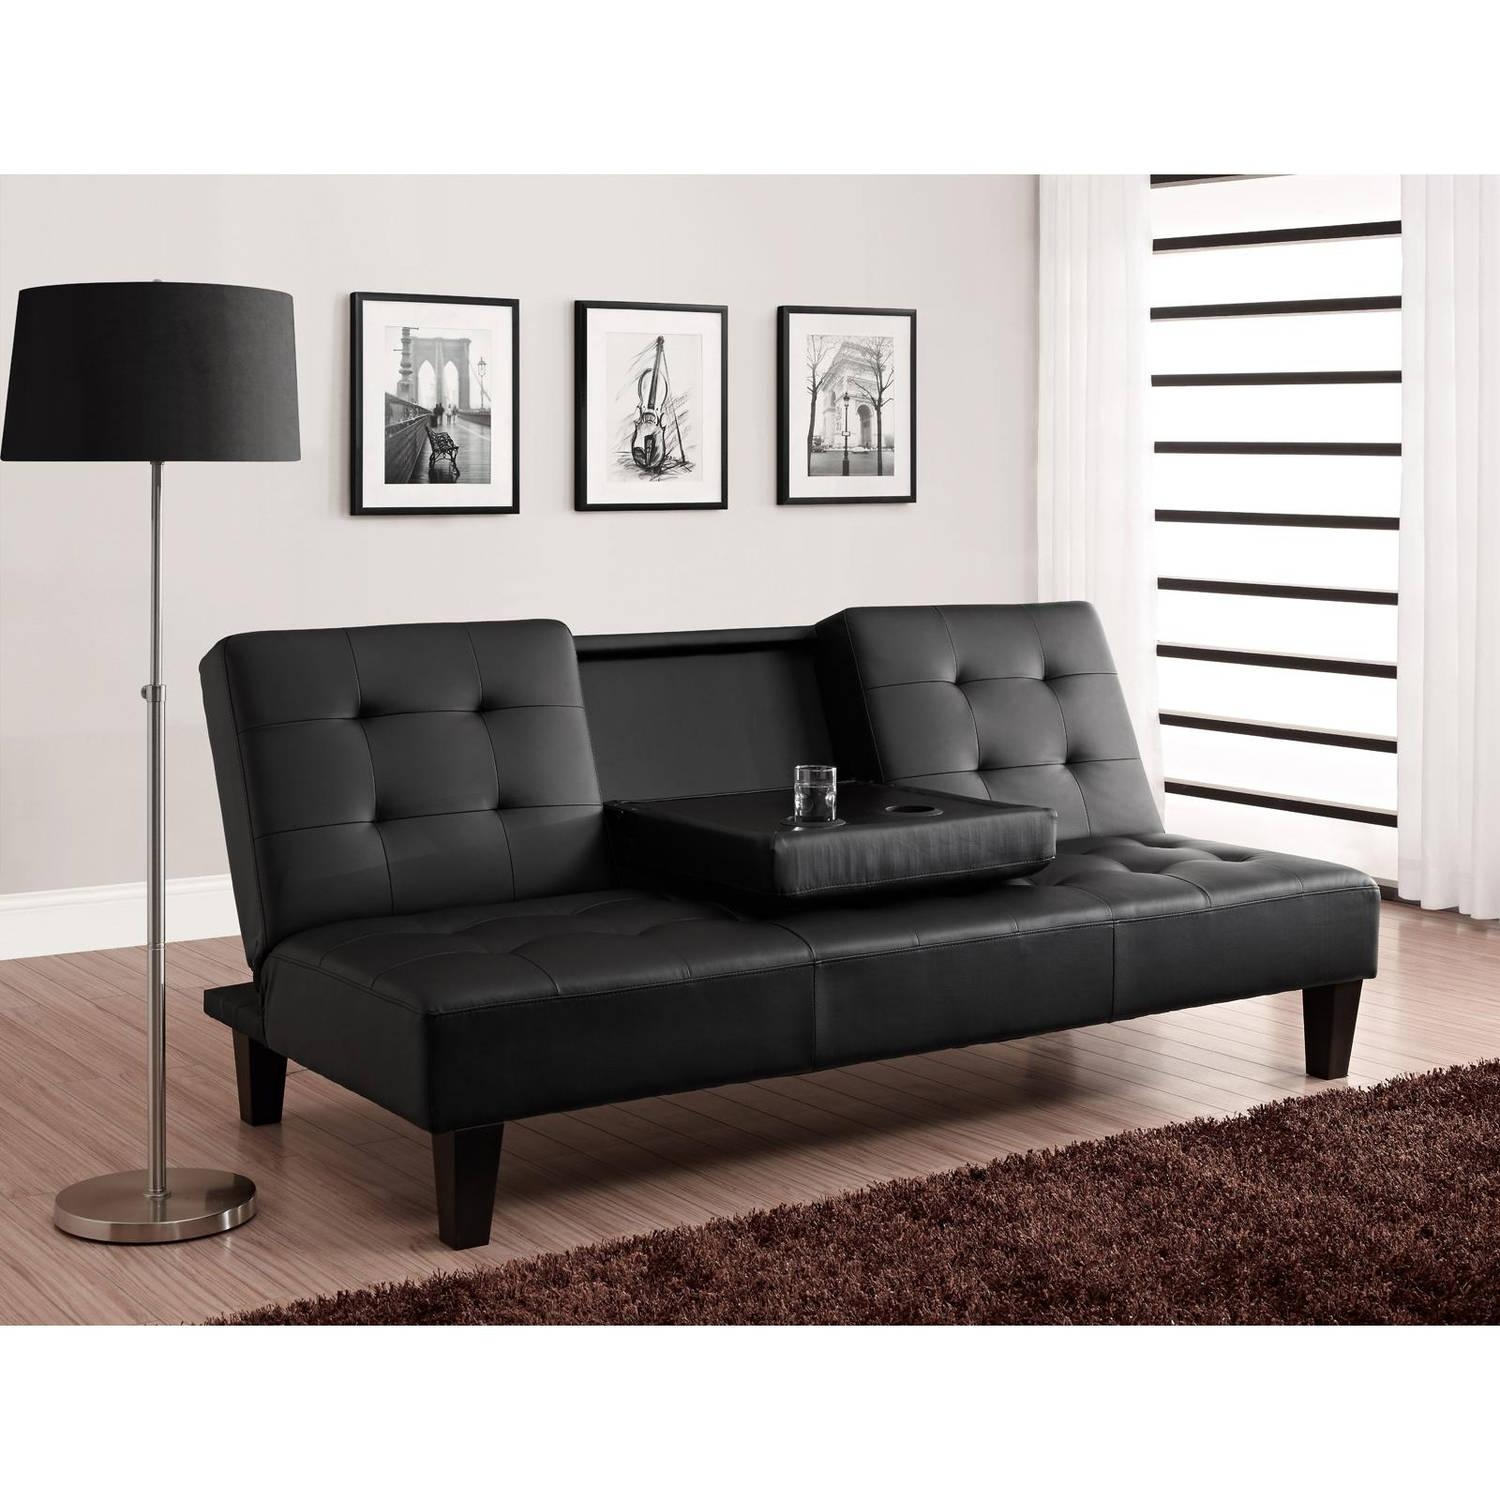 Julia Cupholder Convertible Futon, Multiple Colors – Walmart Within Convertible Futon Sofa Beds (View 4 of 20)